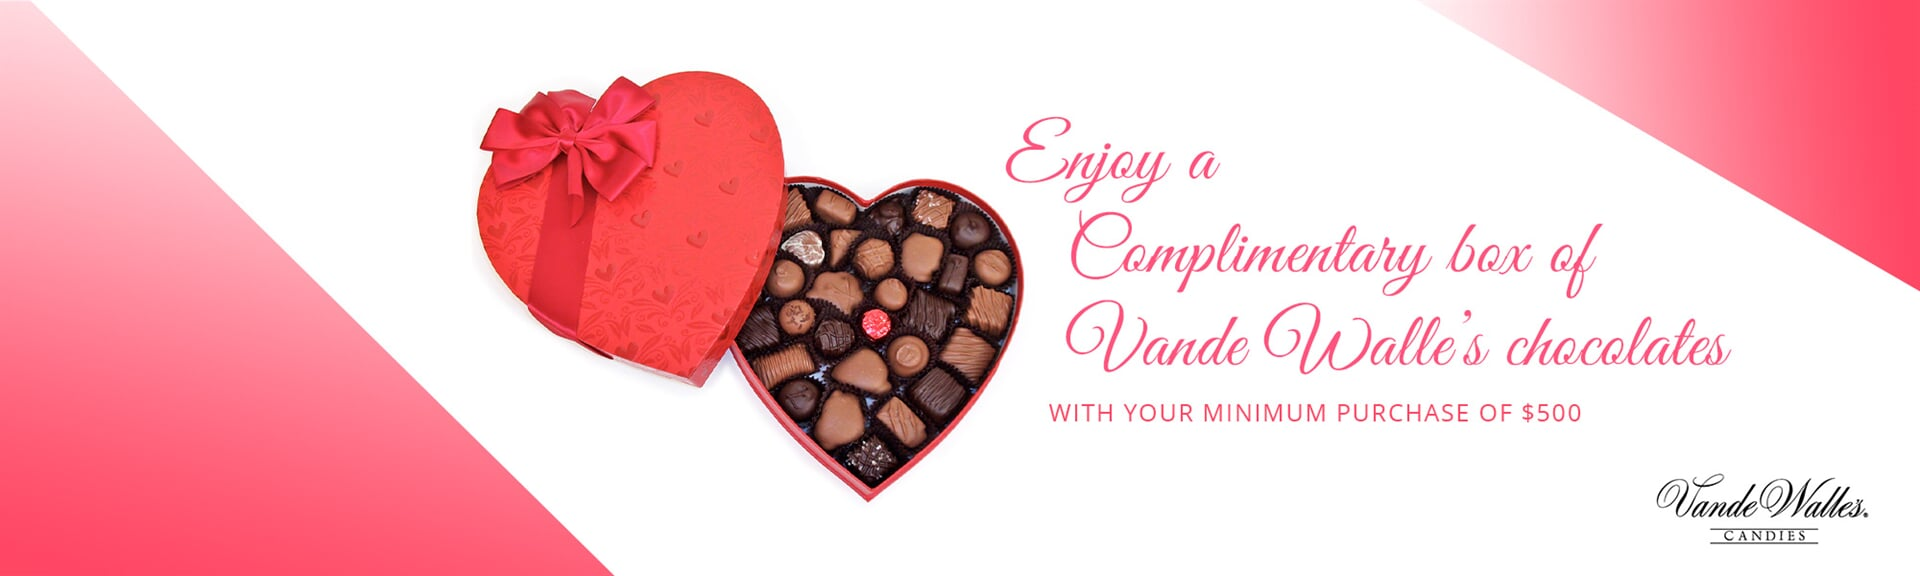 Enjoy a Free 1-pound box of heart-shaped chocolates from Vande Walle's Candies with your minimum purchase of $500 at Appleton Carpetland USA